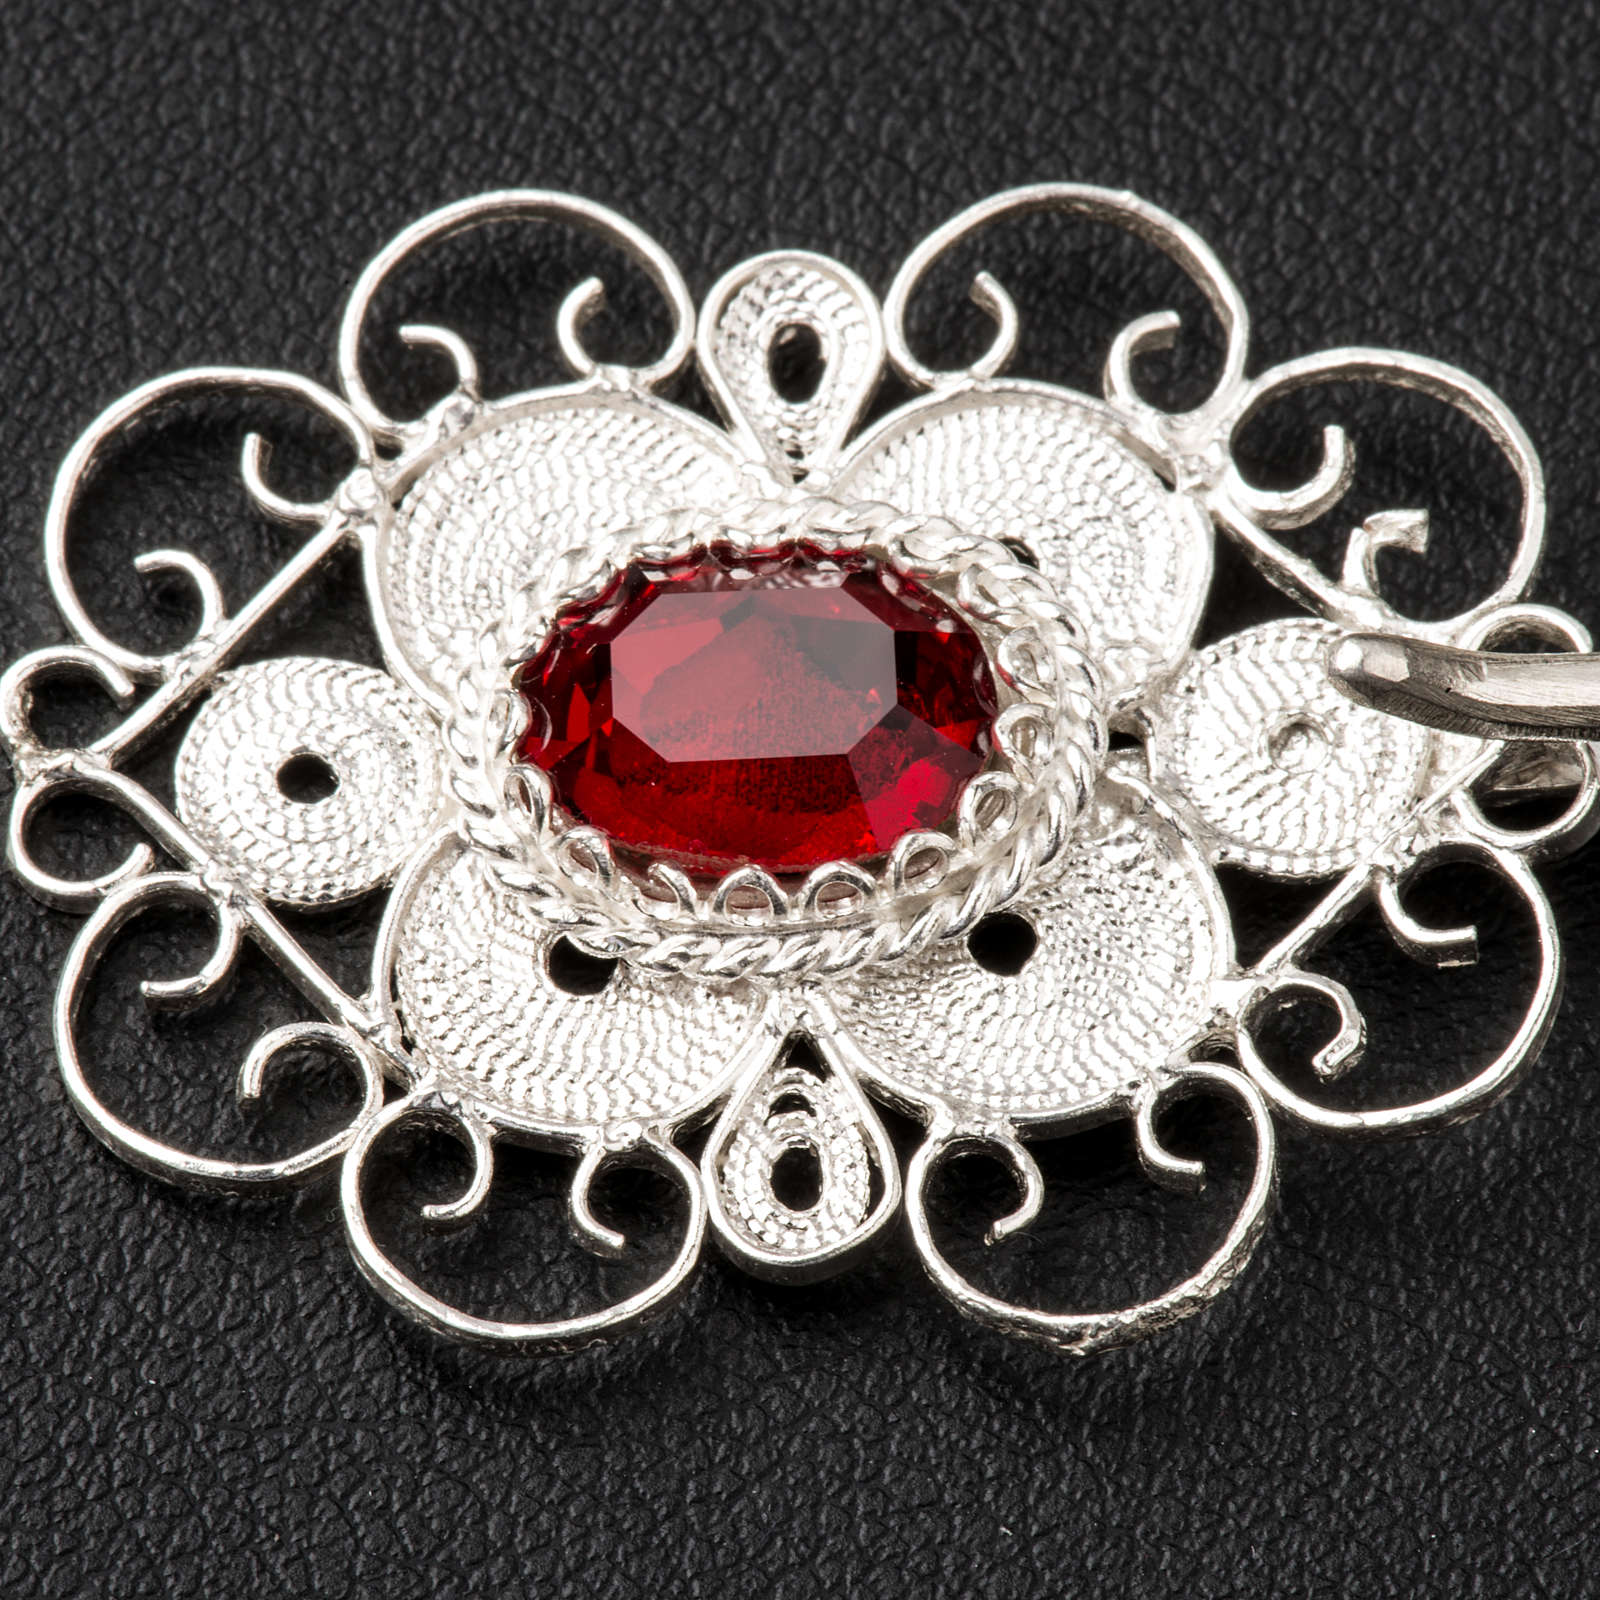 Cope clasp, 800 silver filigree, round with red stone 4